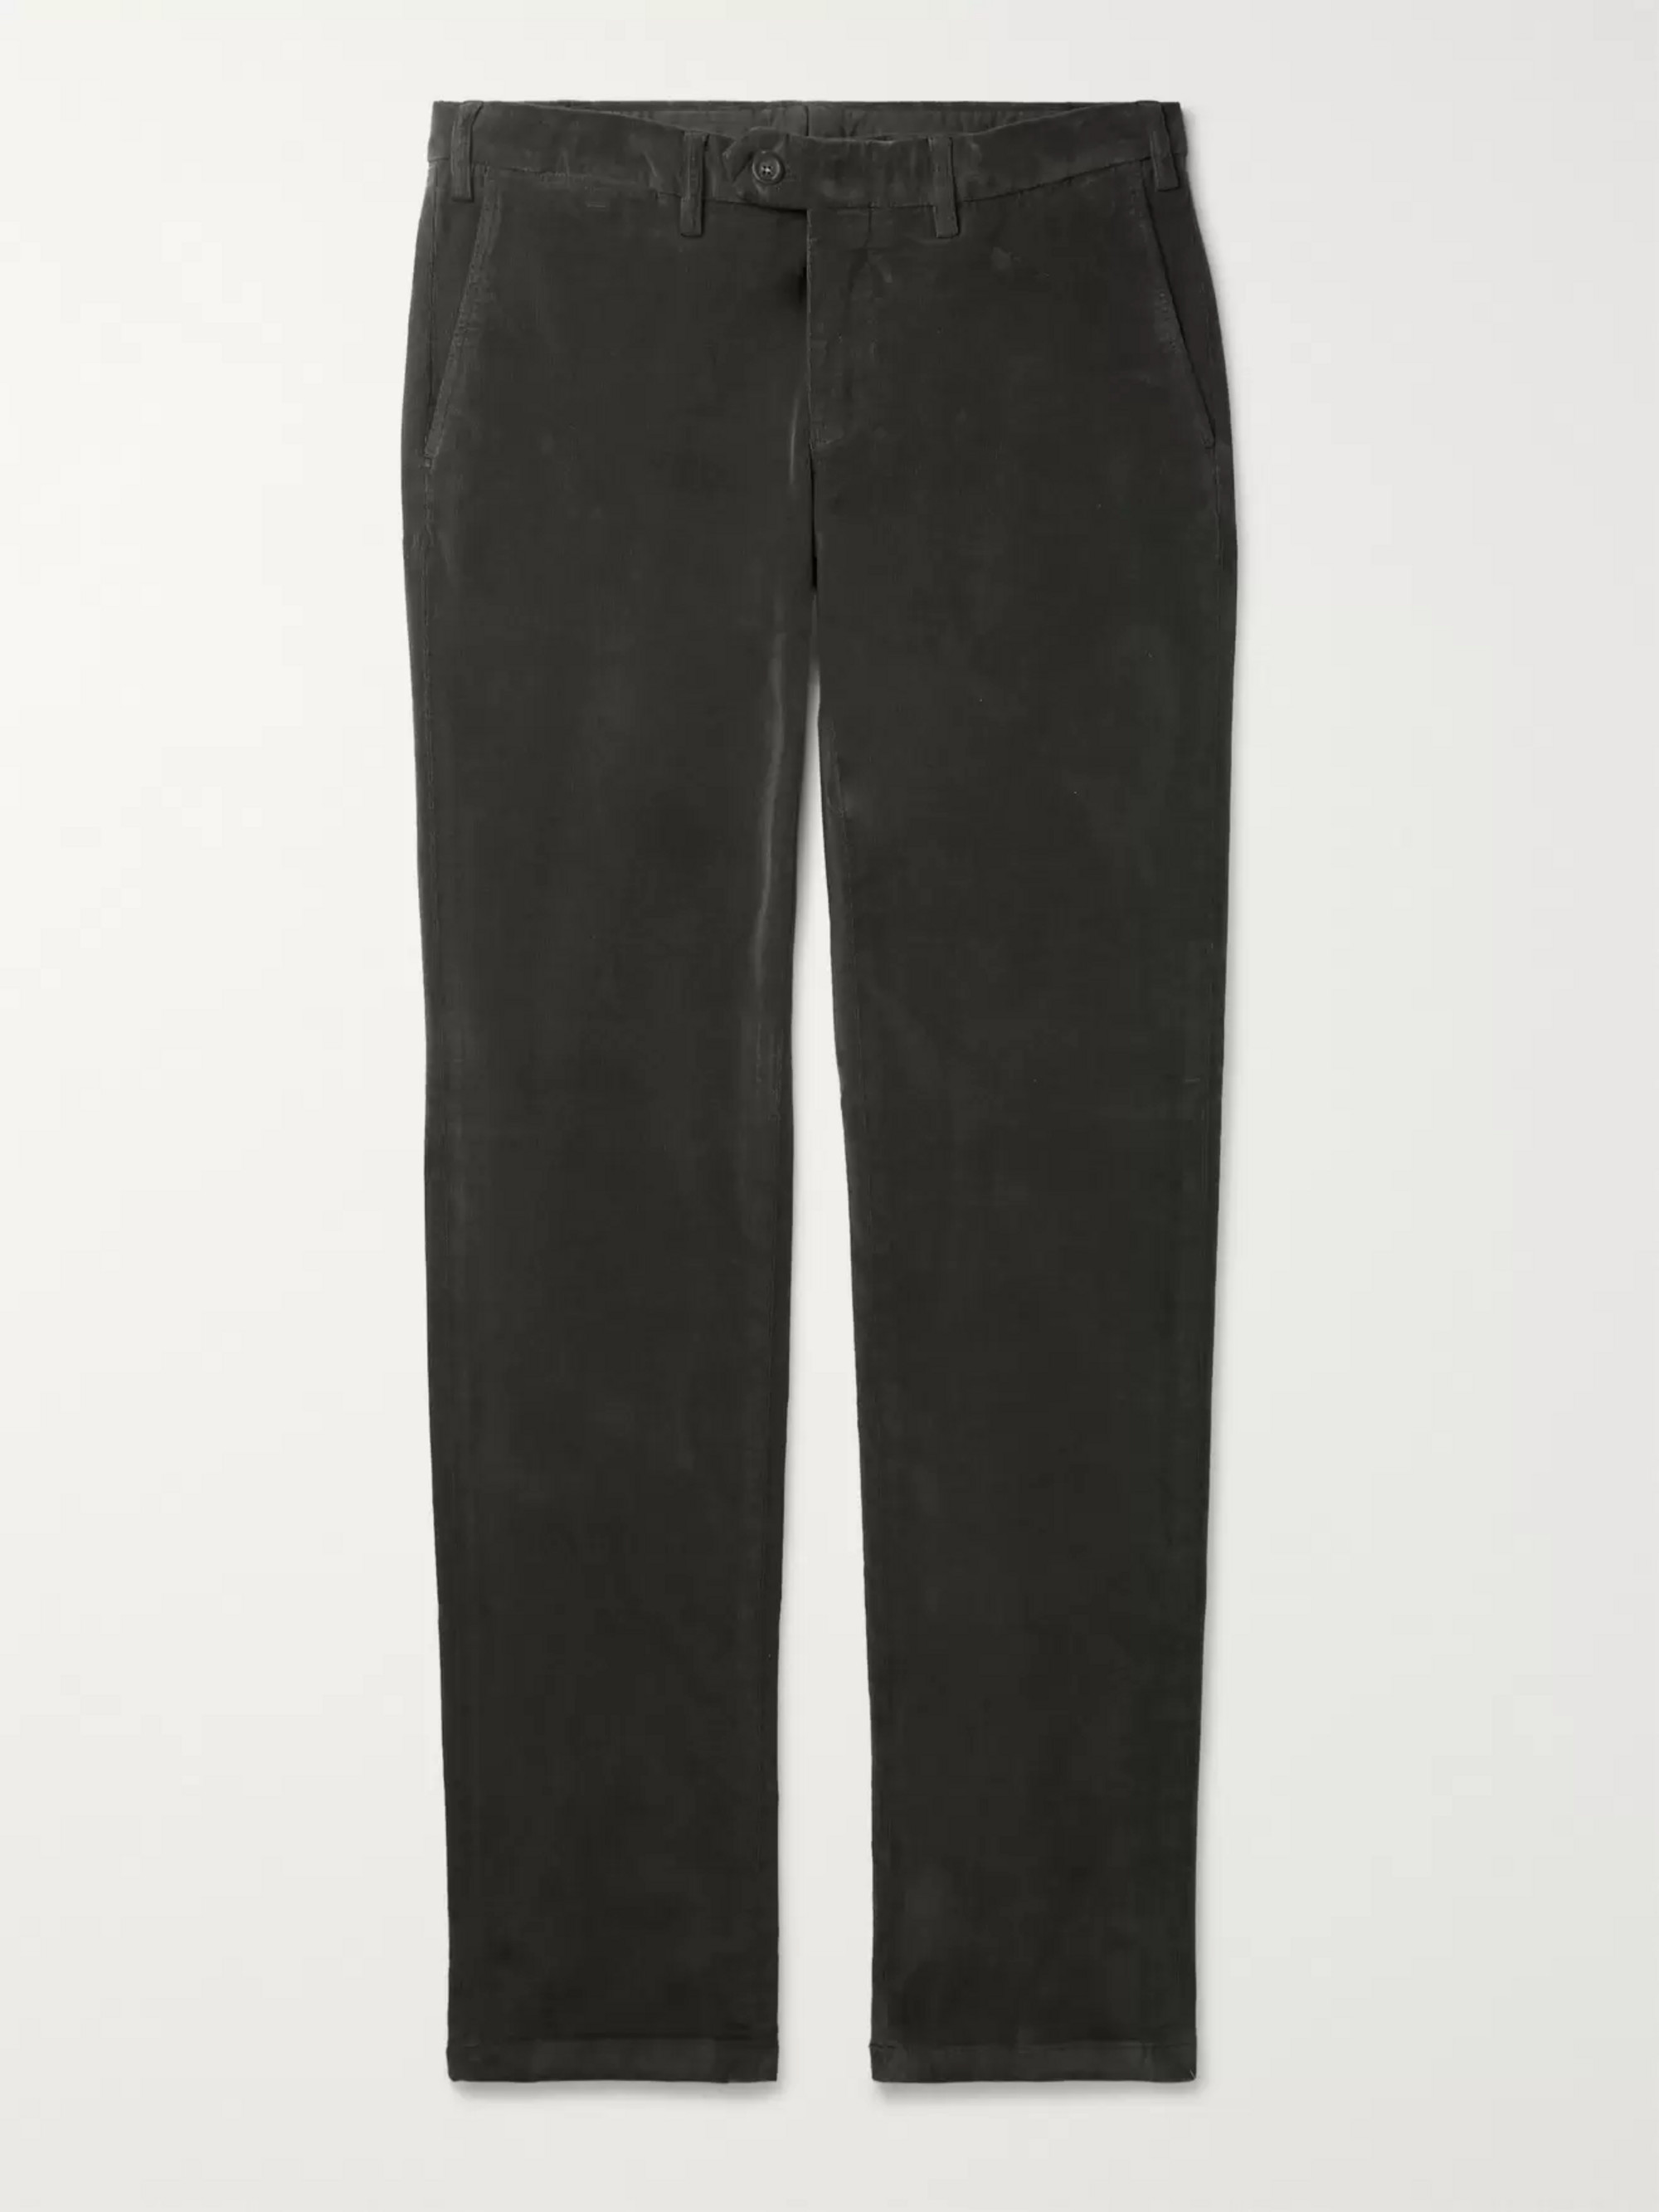 Canali Cotton-Blend Corduroy Trousers